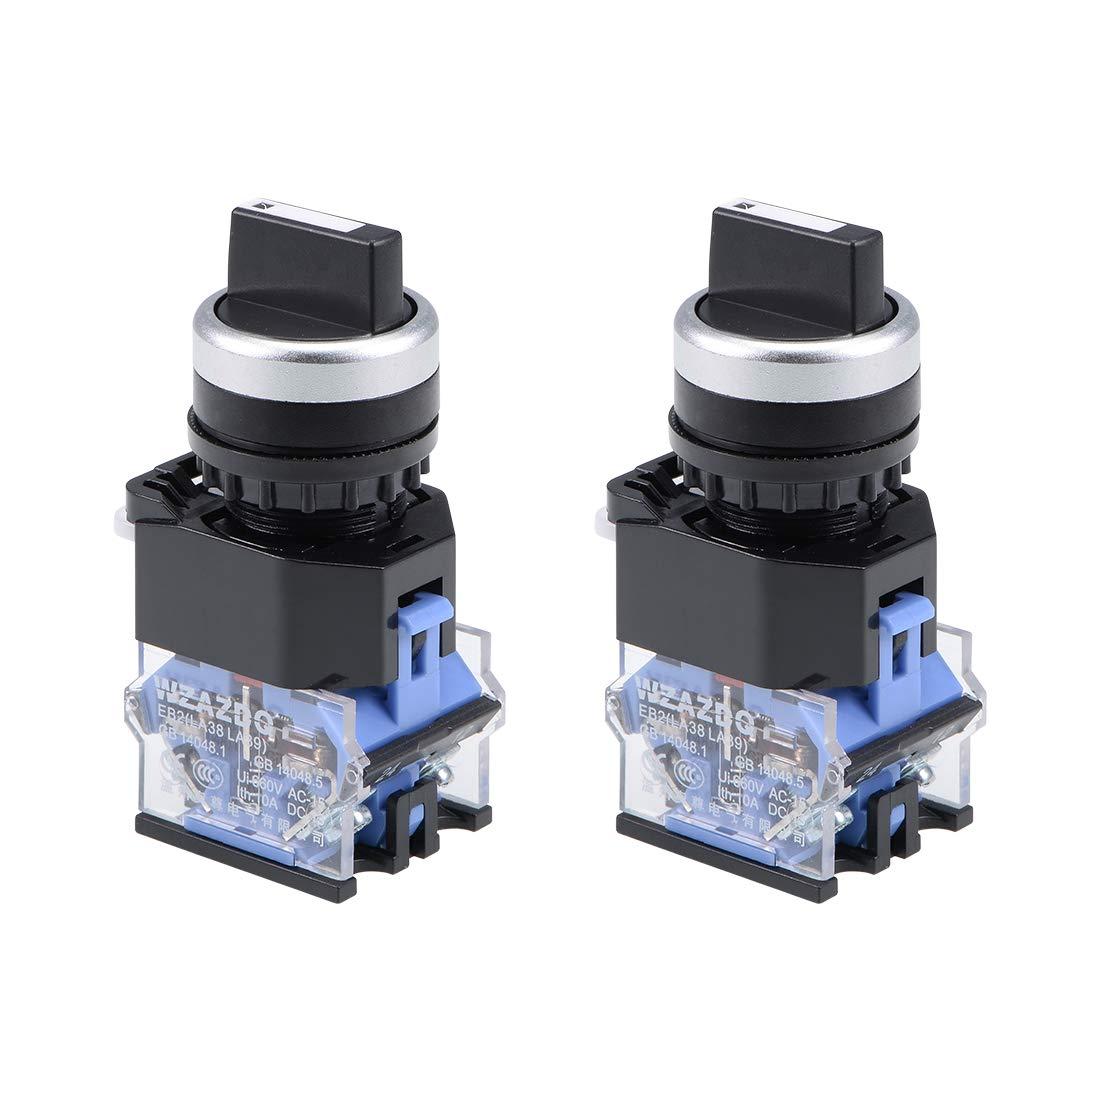 uxcell Rotary Selector Switch 2 Positions 2NC Momentary AC 660V 10A 22mm Panel Mount Set of 2